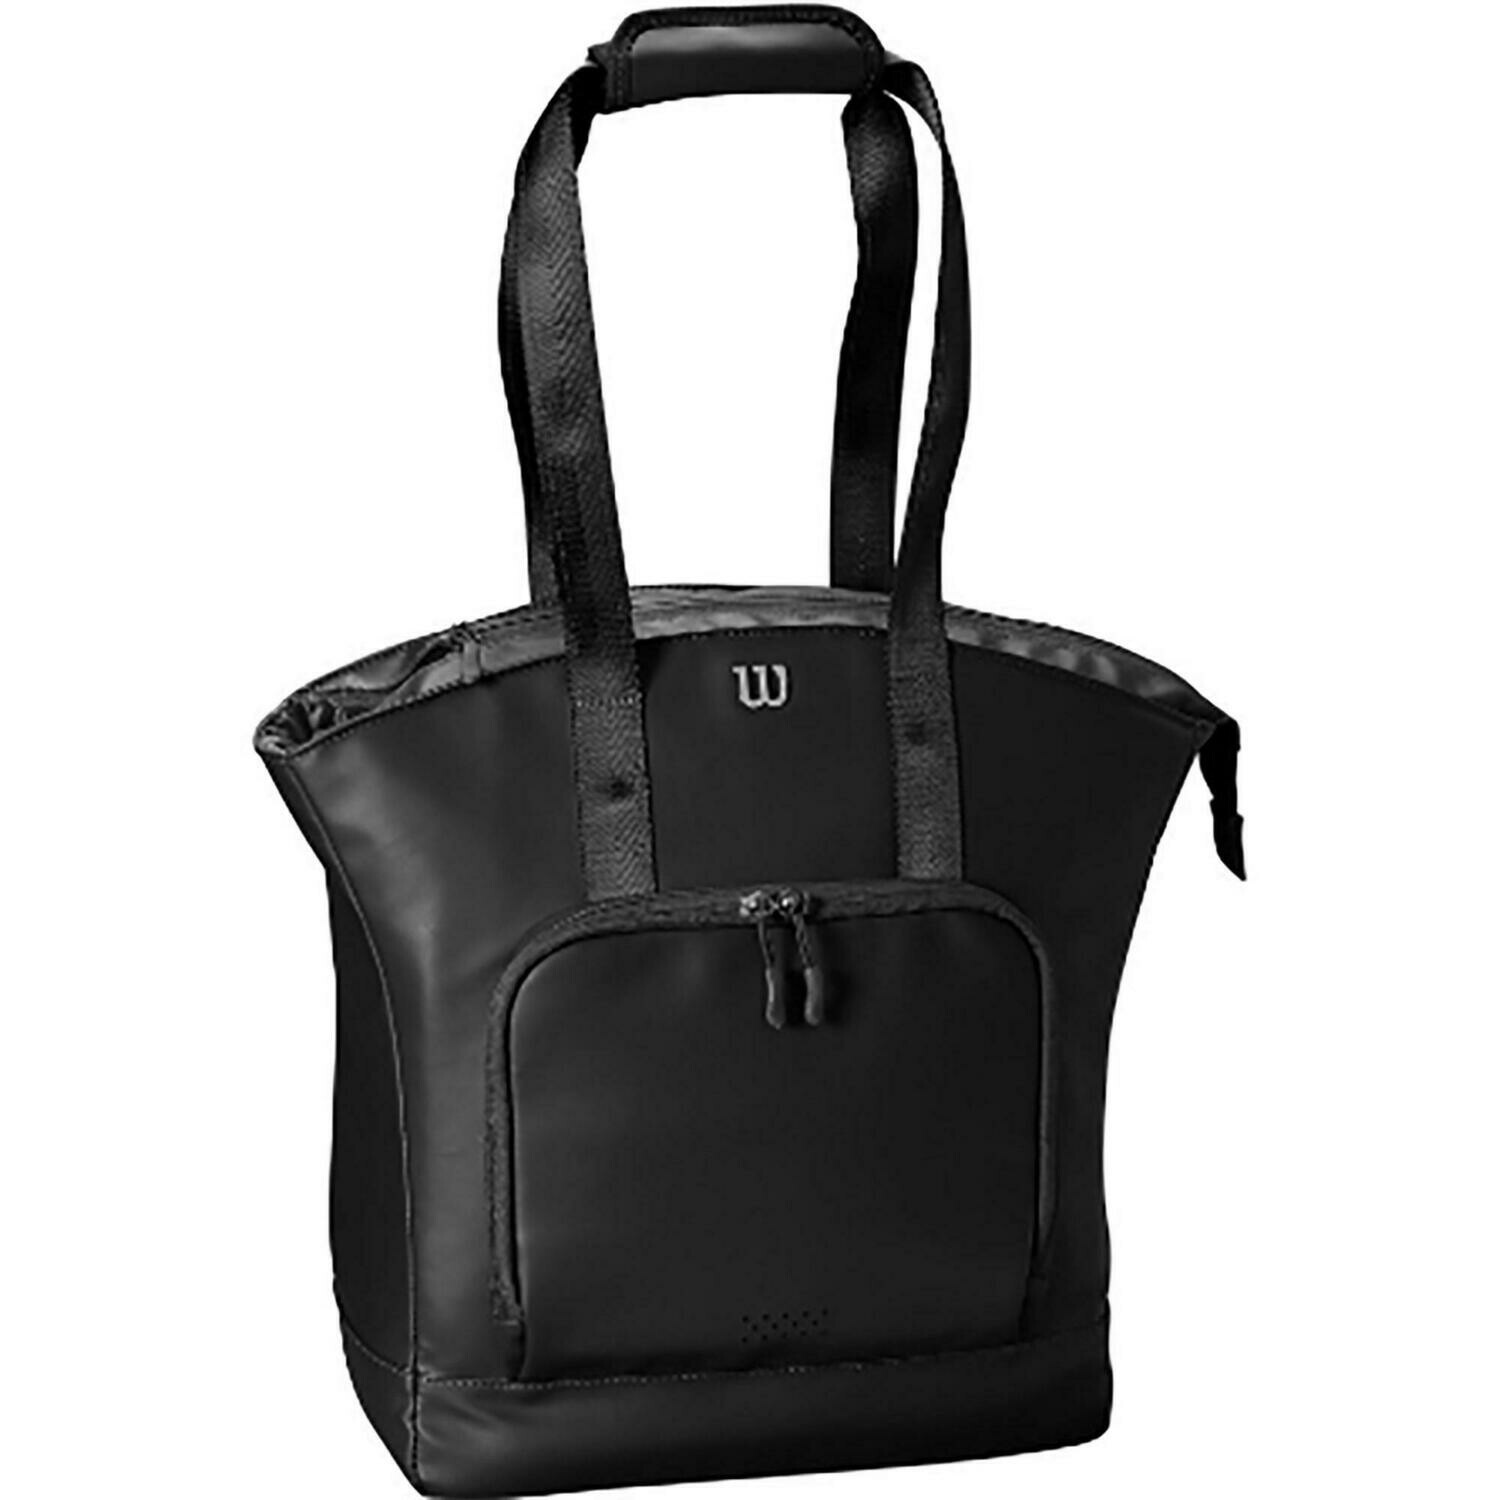 Wilson Women's Tote Bag - Black